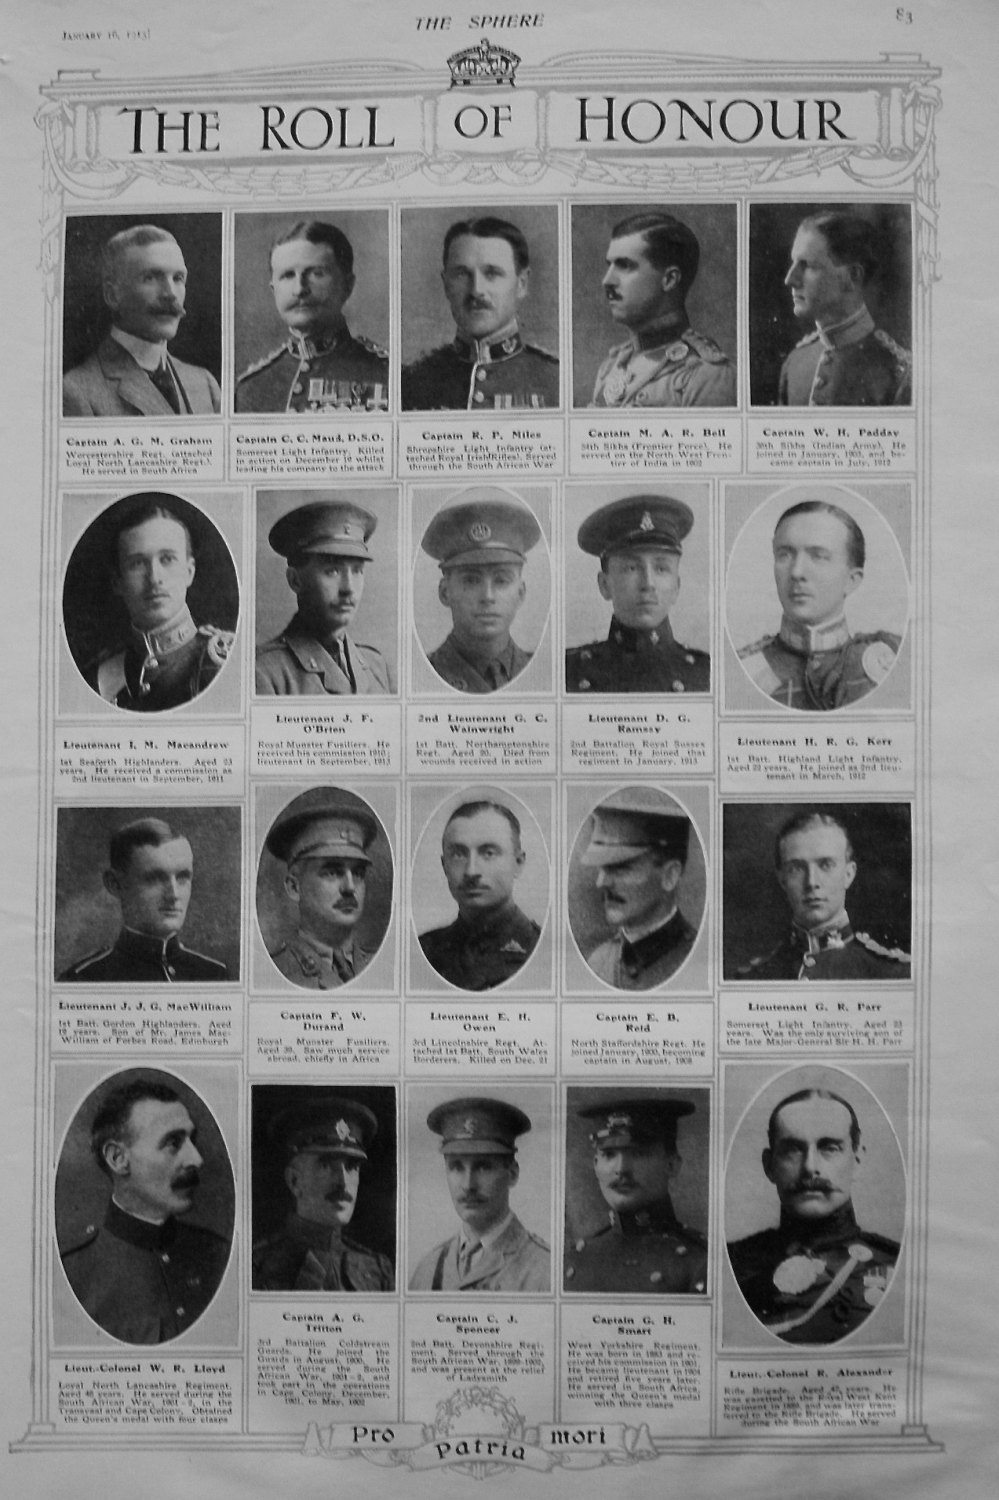 The Roll of Honour. January 16th, 1915.